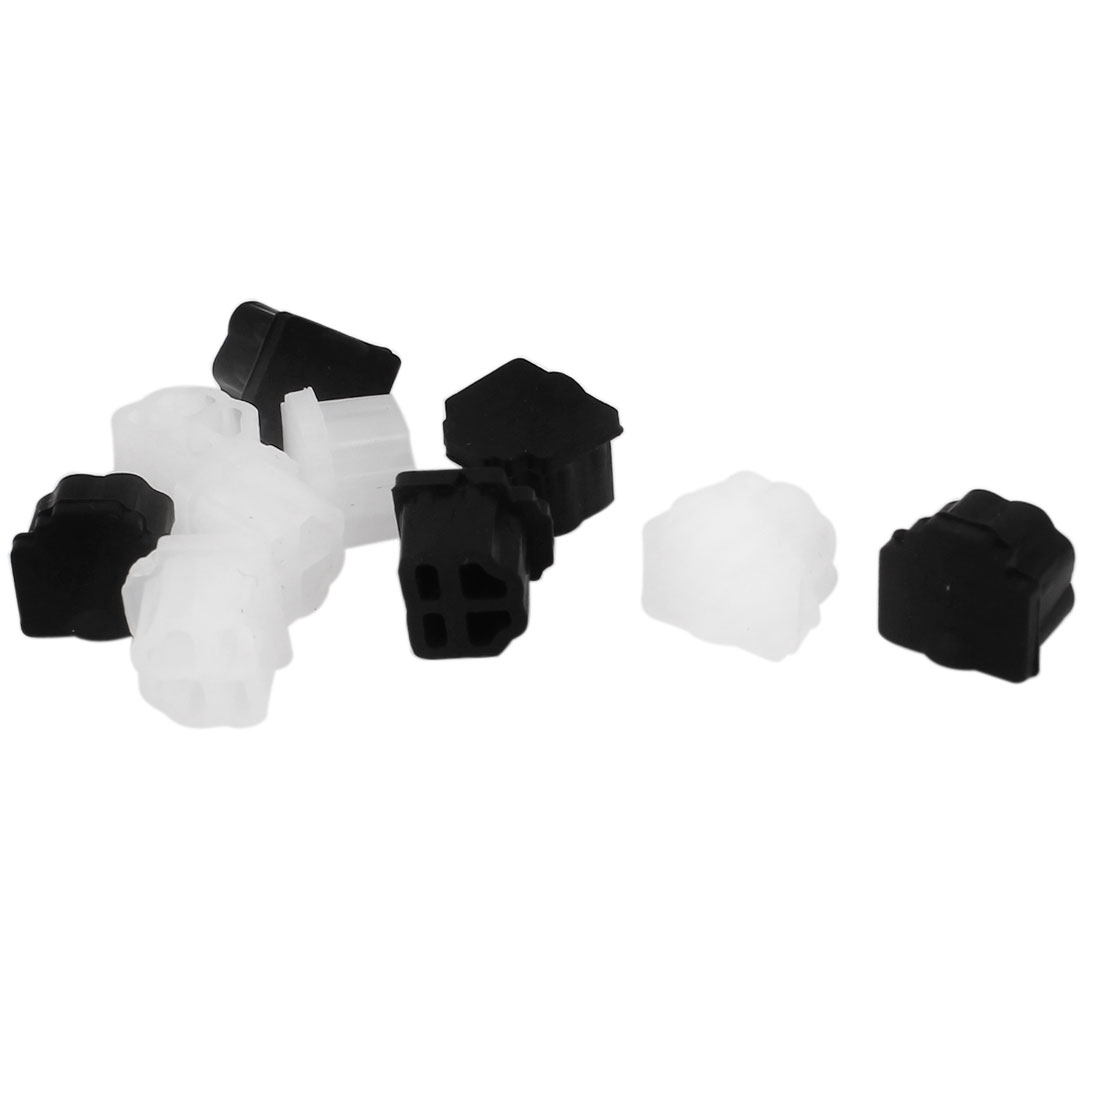 Black Clear Rubber RJ11 Connector Port Anti Dust Hat Protector Cover 10PCS